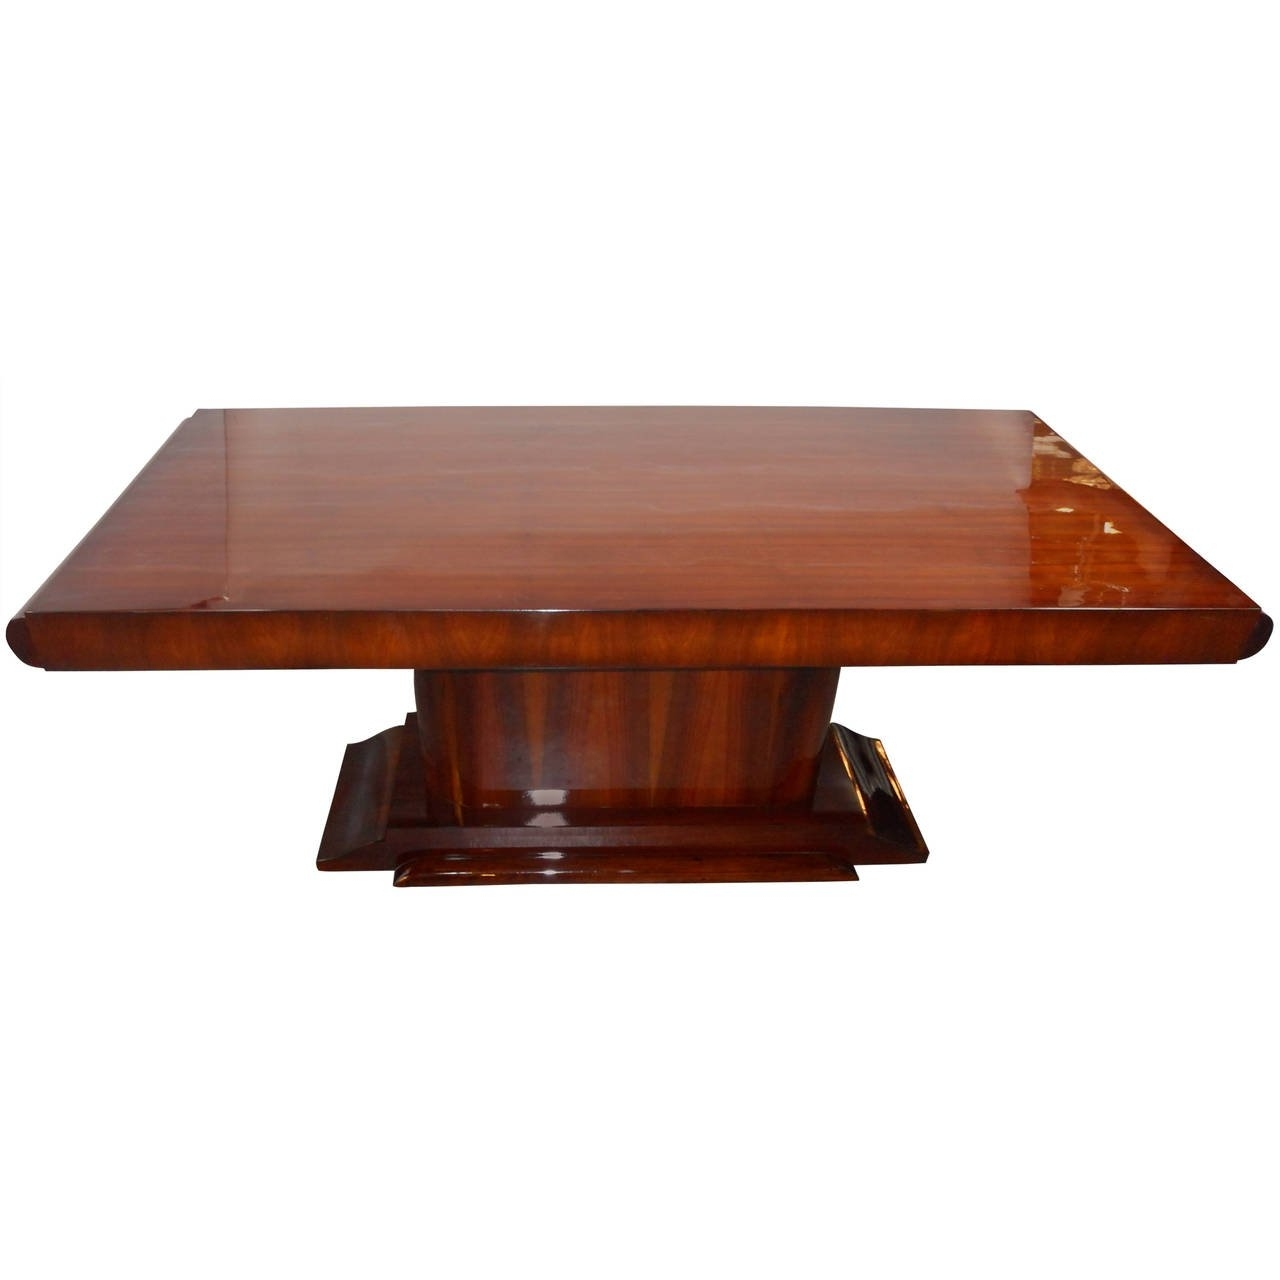 2018 Dining Tableleon Jallot, Circa 1920S For Sale At 1Stdibs with regard to Leon Dining Tables